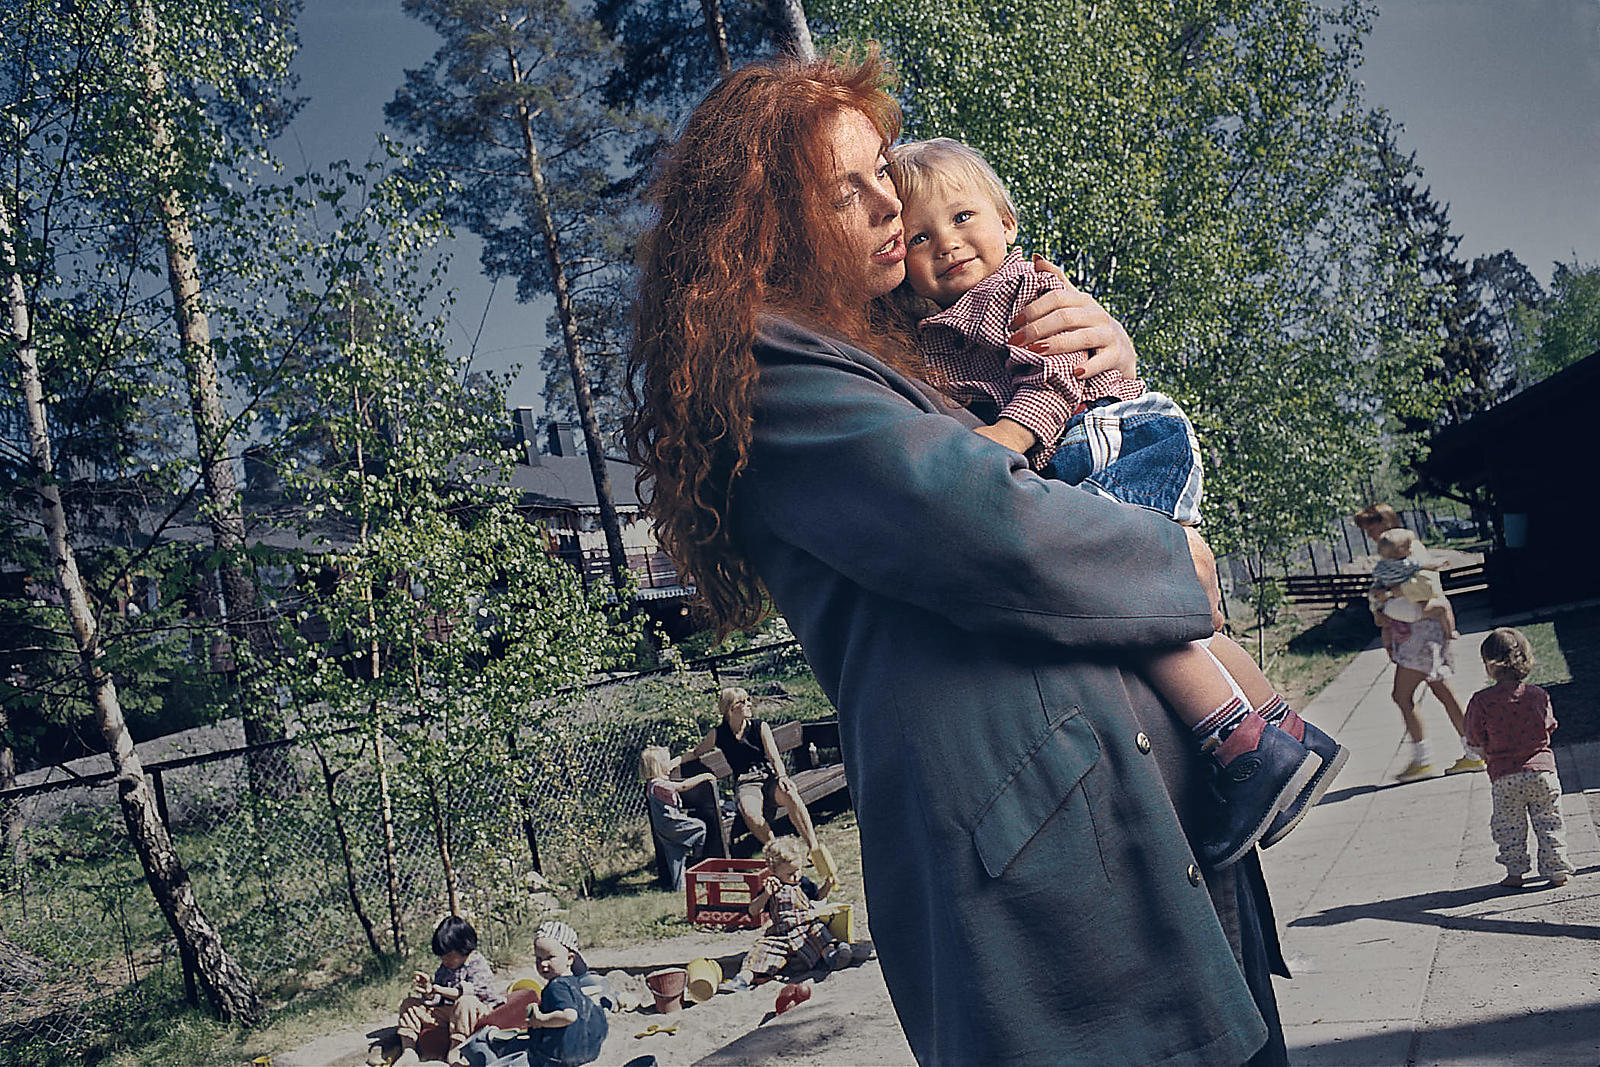 02-intimate-portrait-of-mother-reunited-and-carrying-her-child-to-safety